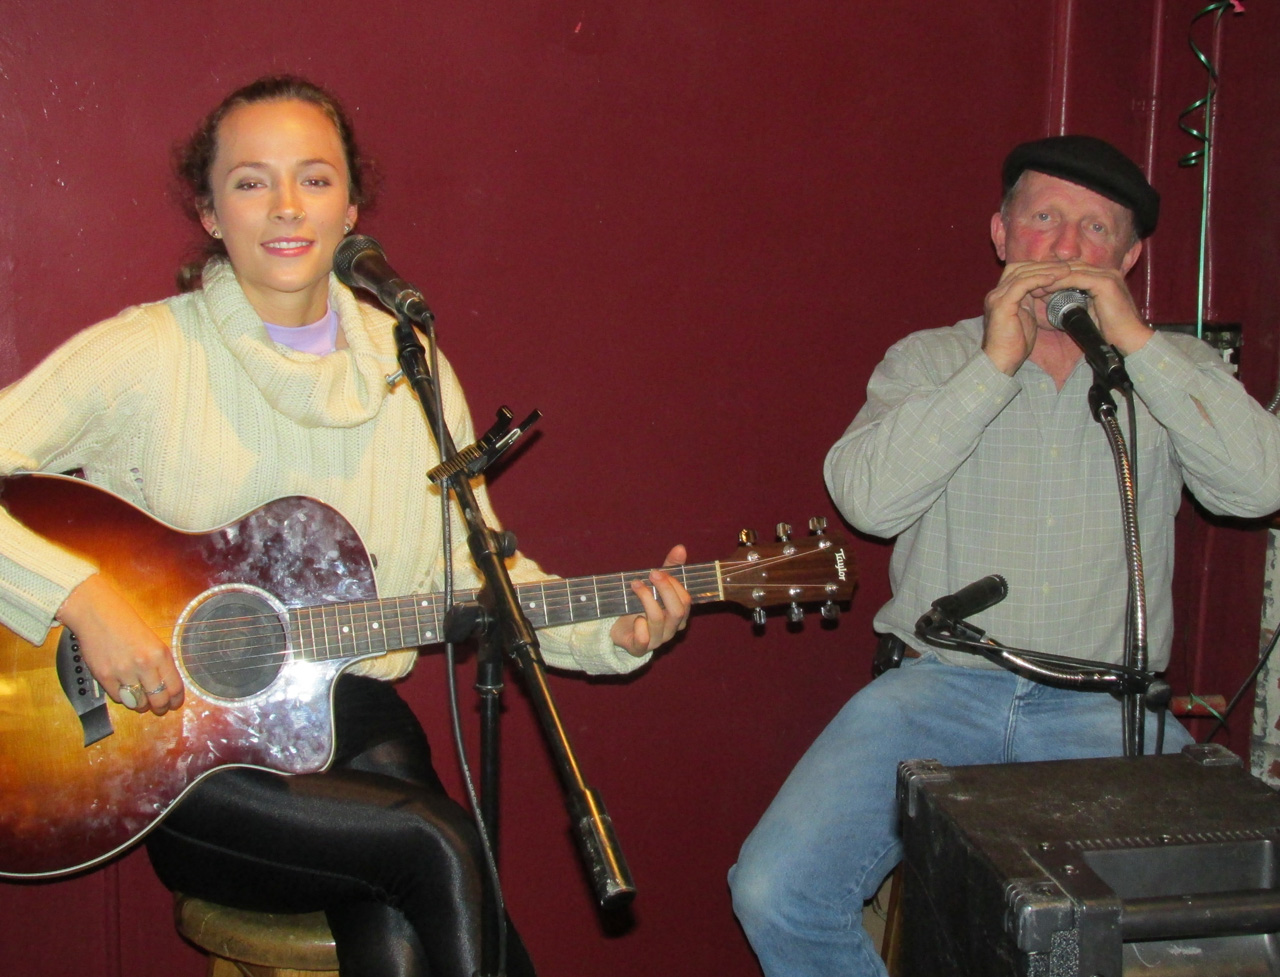 Performers entertain with live Irish music.